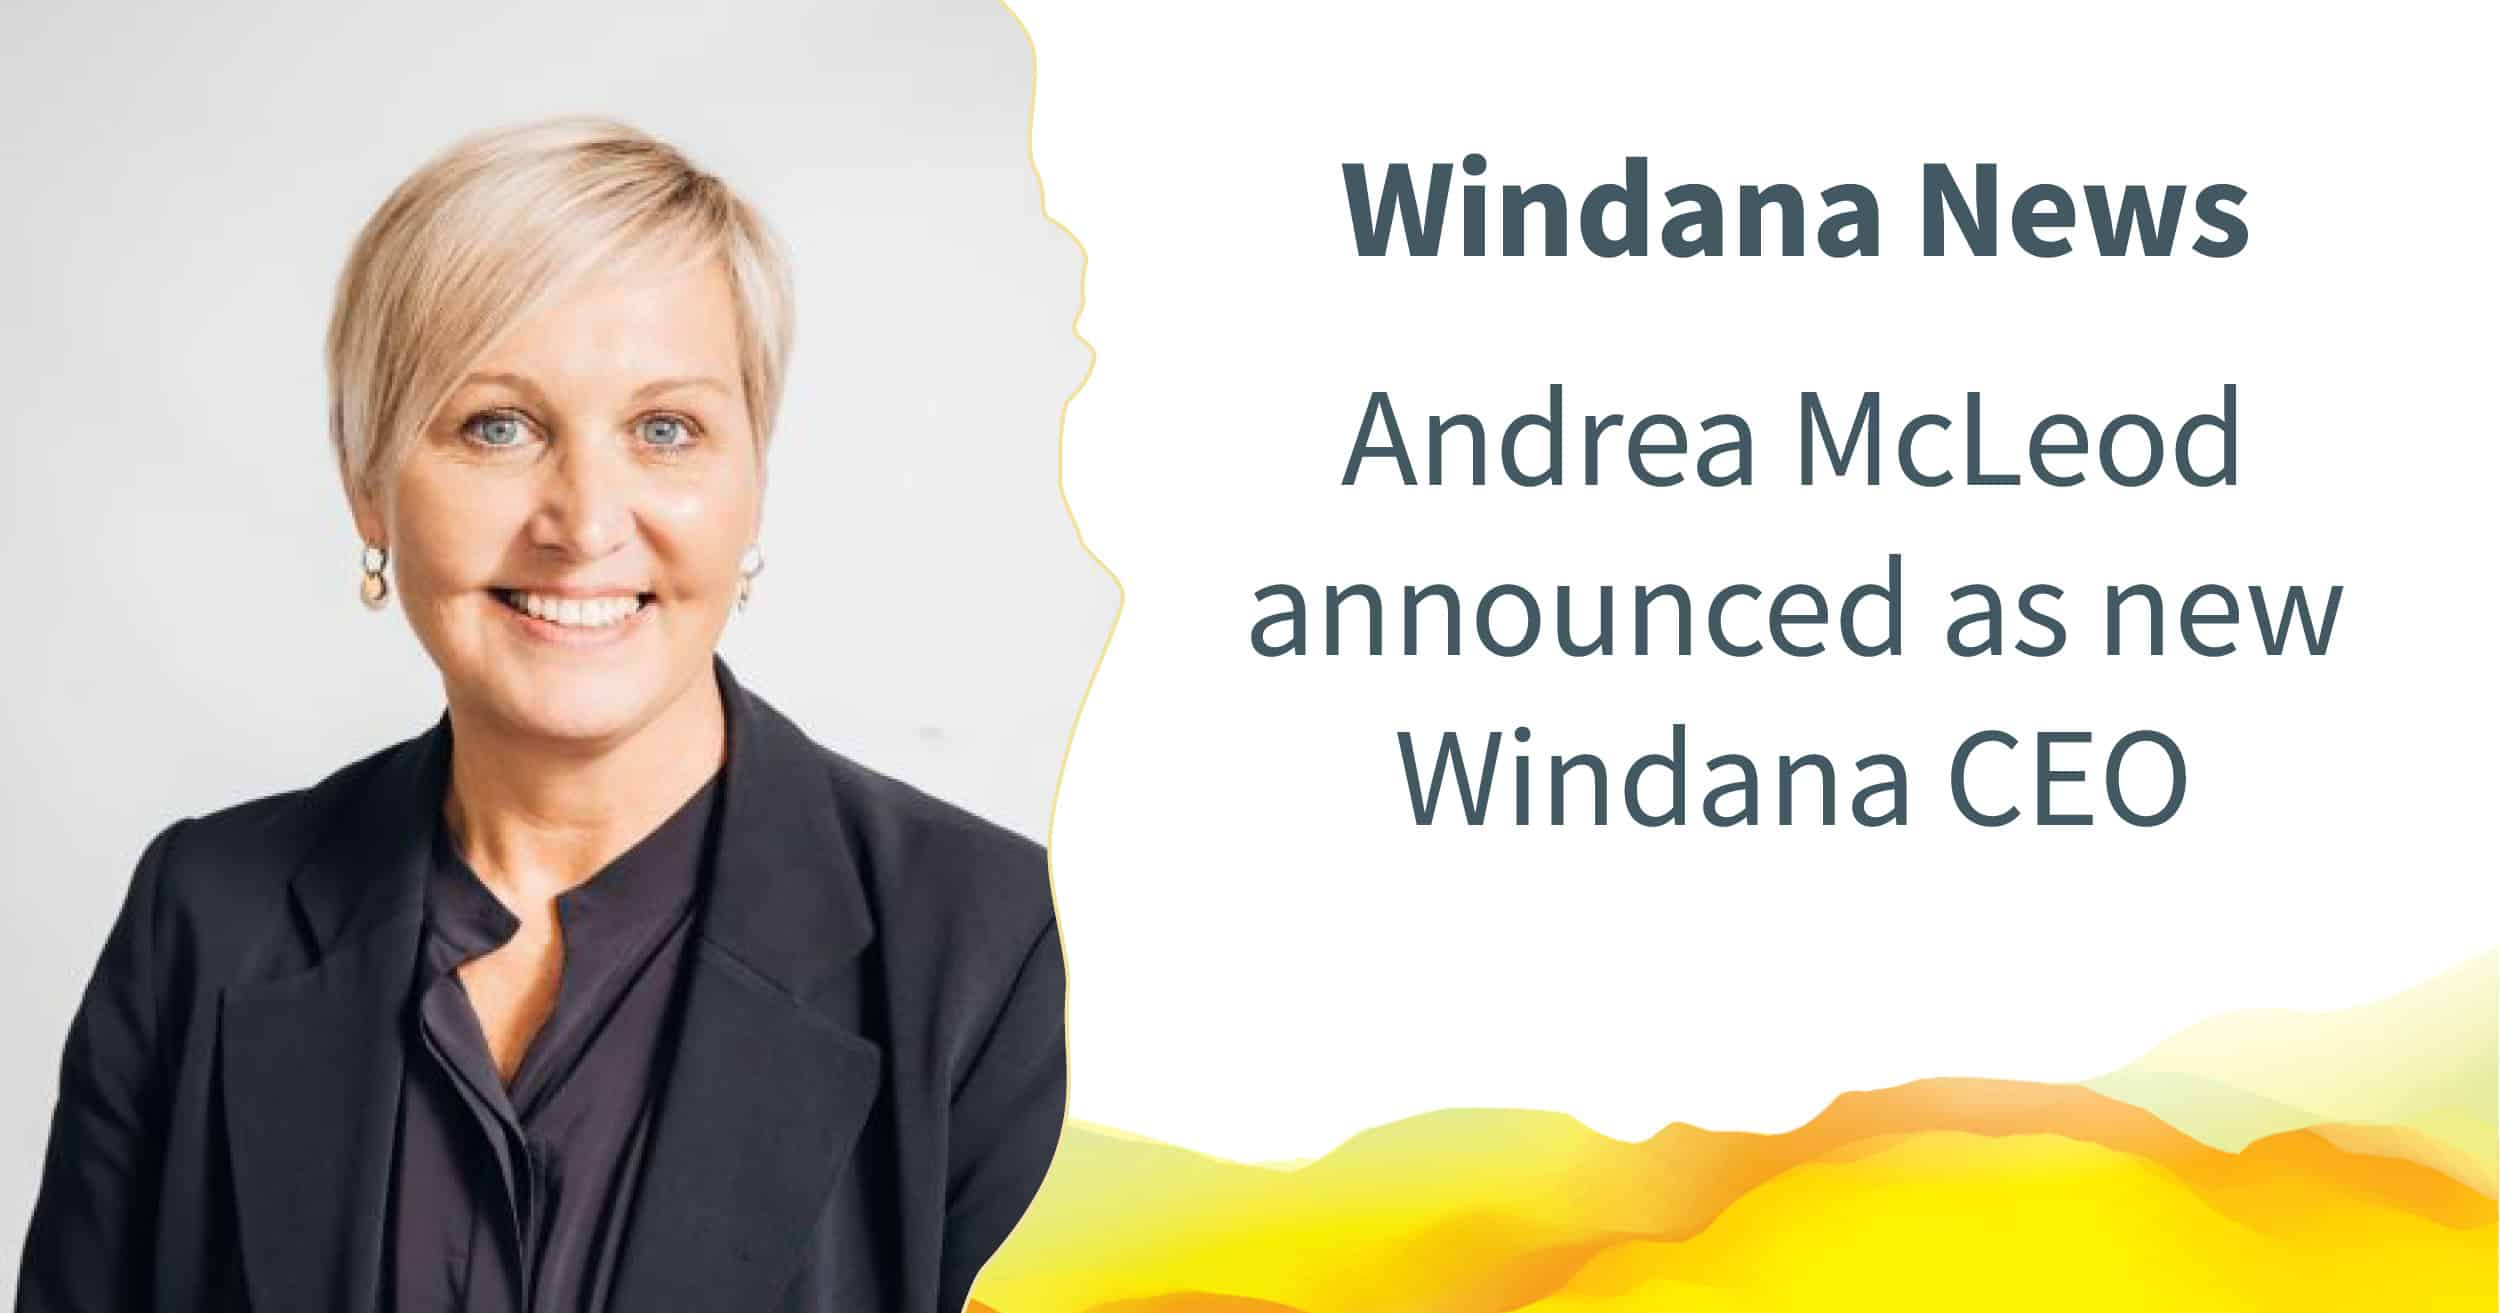 """Text in image: """"Windana News"""". Underneath, text reads: """"Andrea McLeod announced as new Windana CEO."""" To the left is a photo of Andrea."""